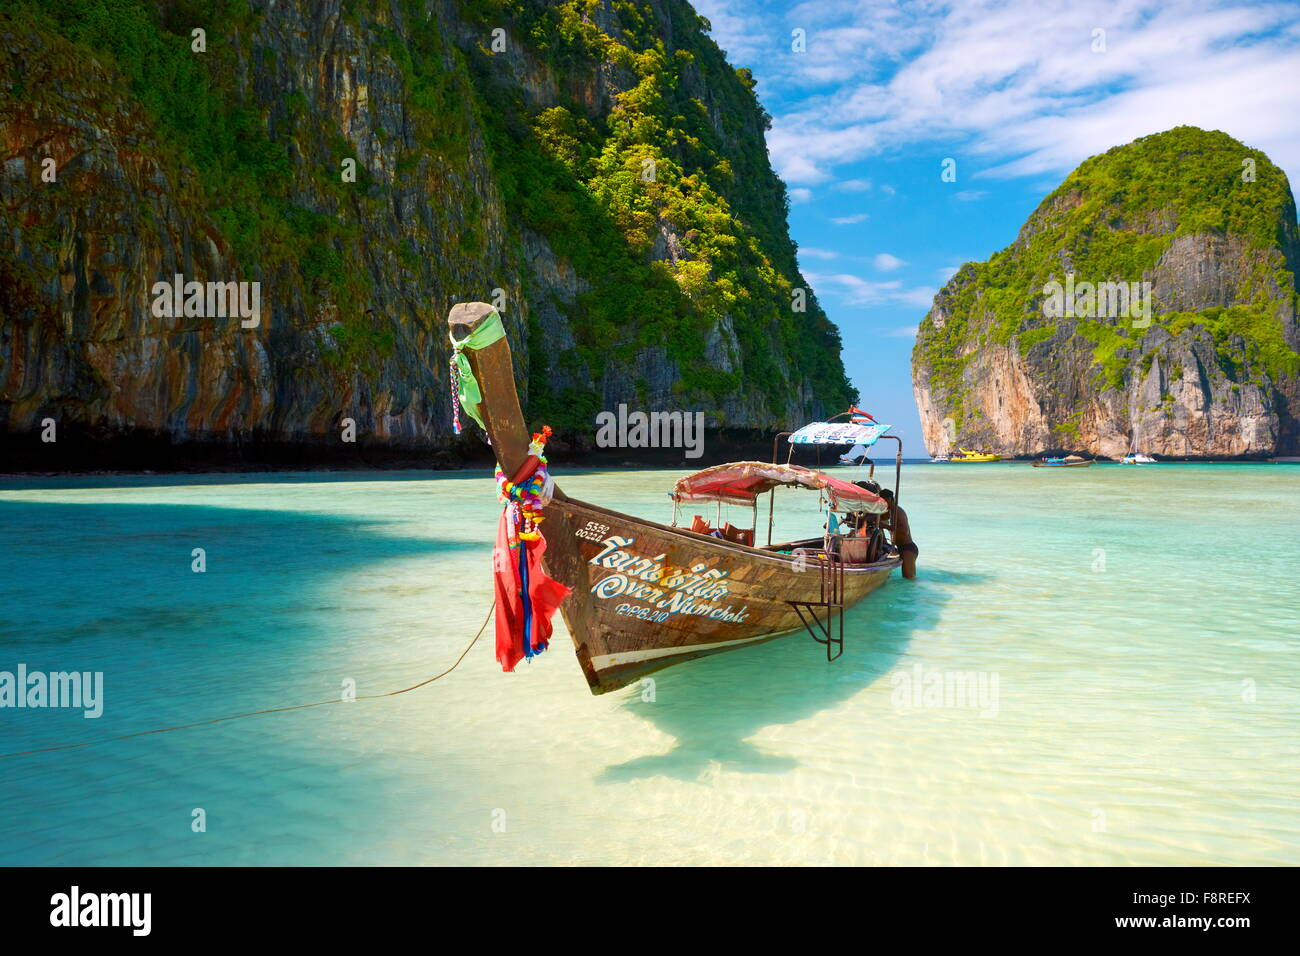 Thailand - tropical Maya Bay on Phi Phi Leh Island, Andaman Sea - Stock Image